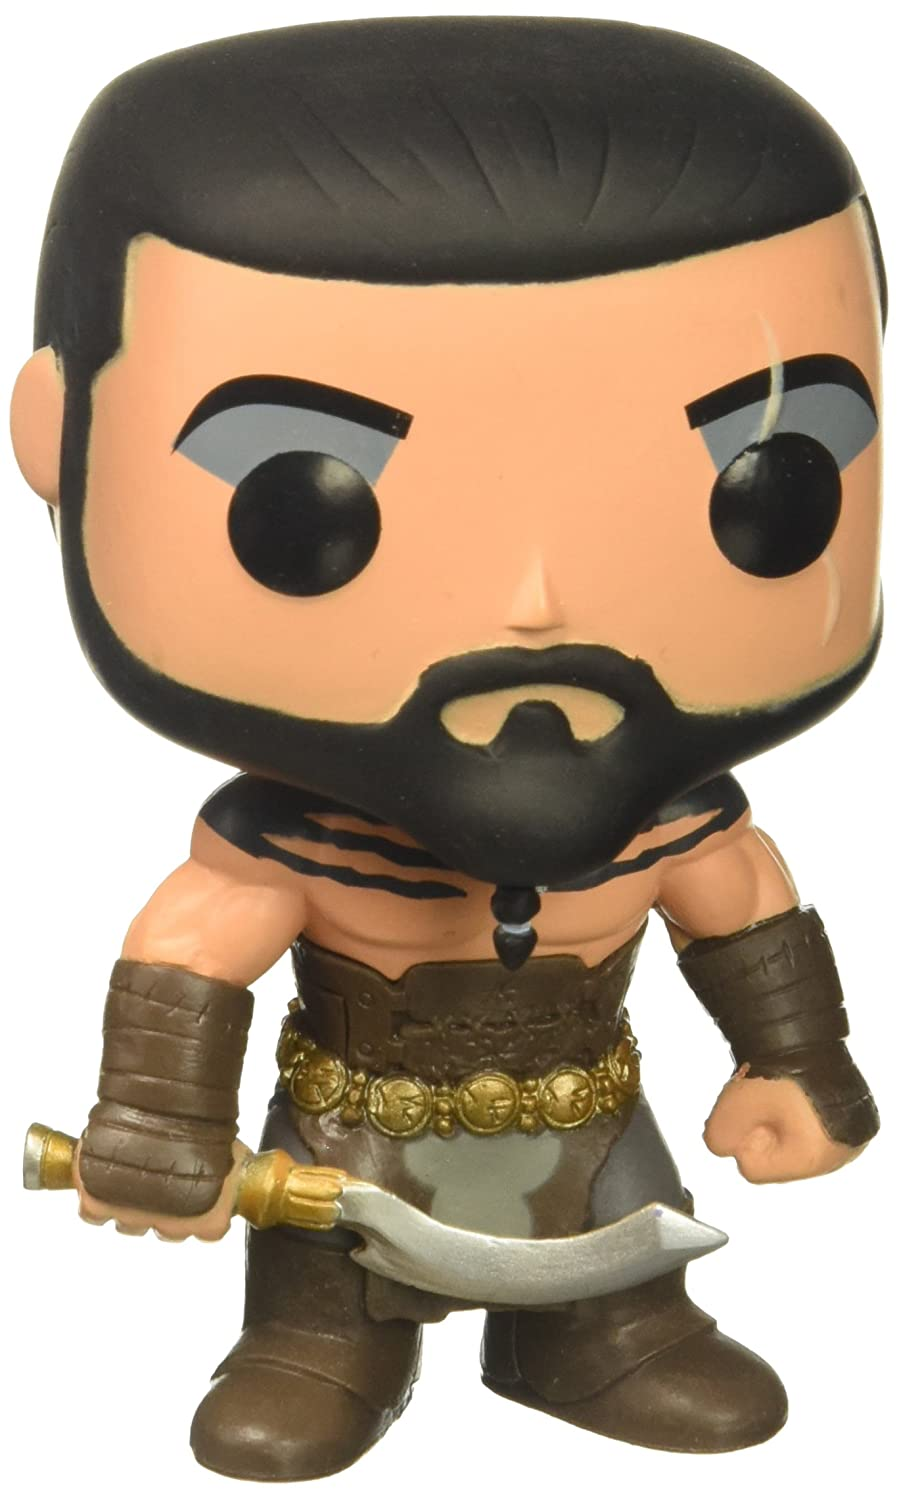 Game of Thrones Pop Vinyl Khal Drogo #04